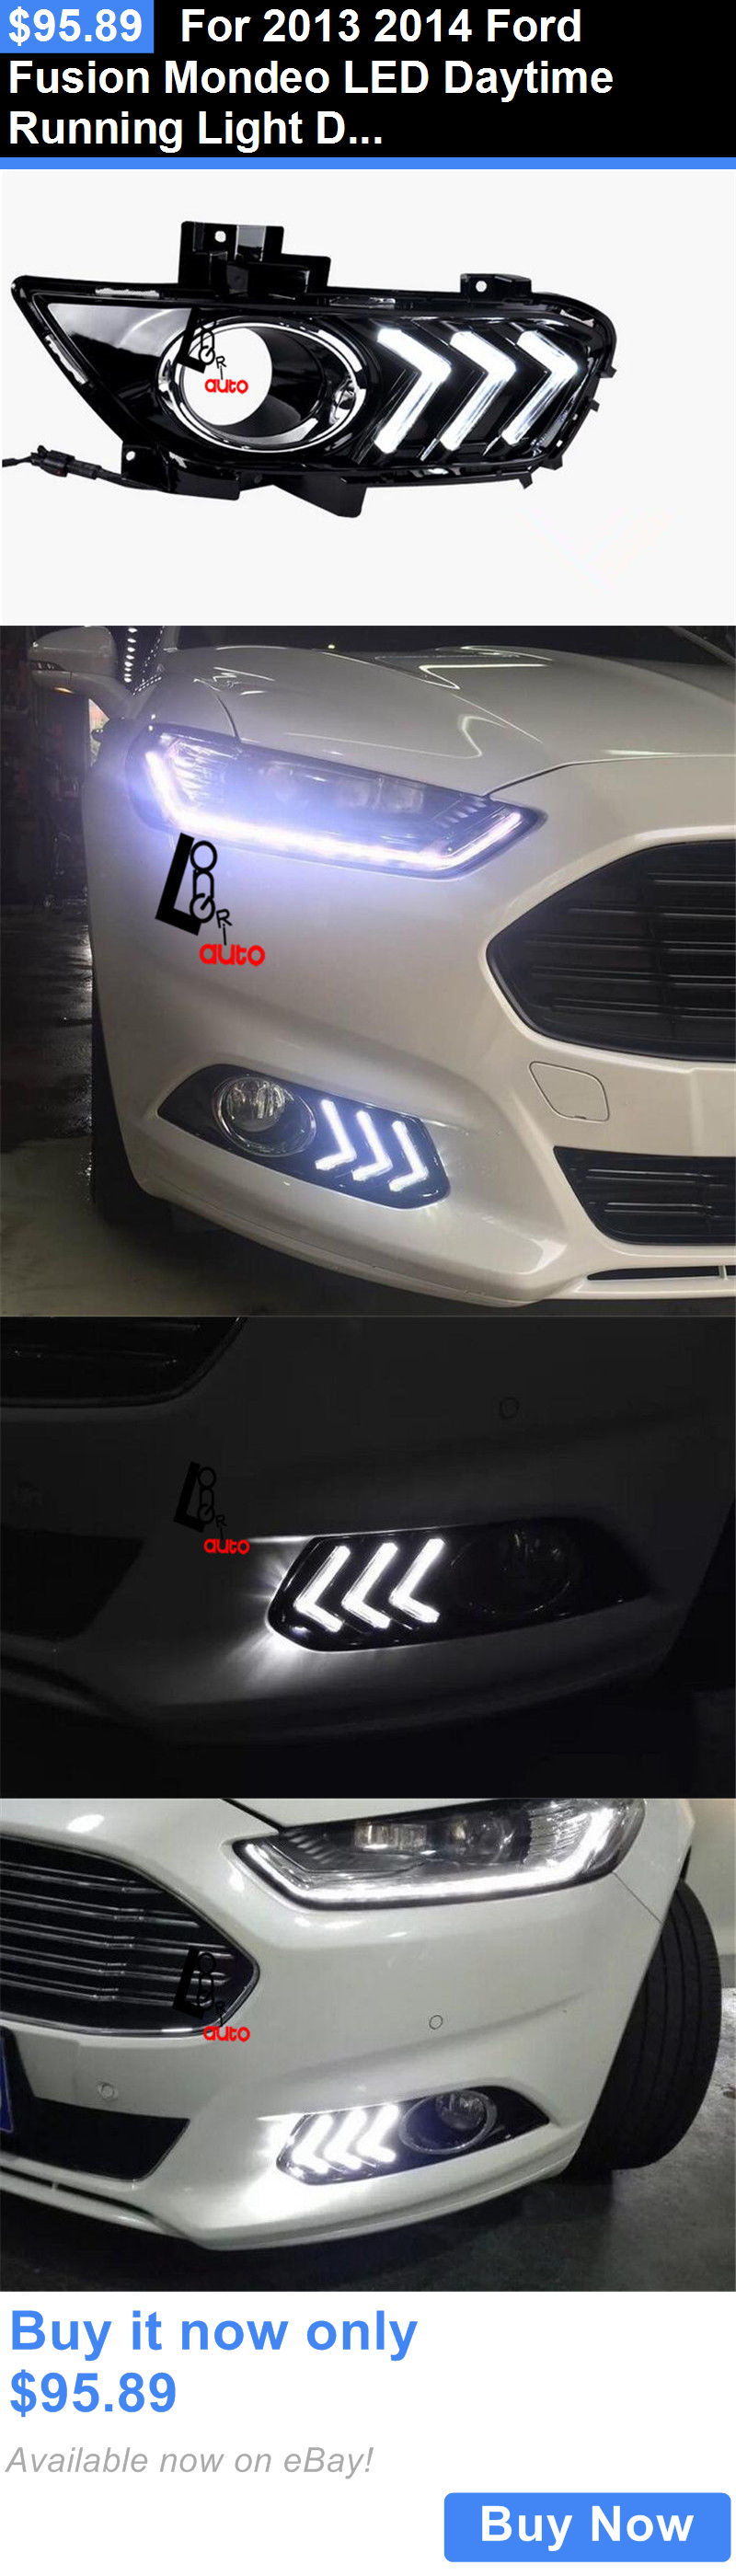 Motors parts and accessories for 2013 2014 ford fusion mondeo led daytime running light drl fog lamp kit new buy it now only 95 89